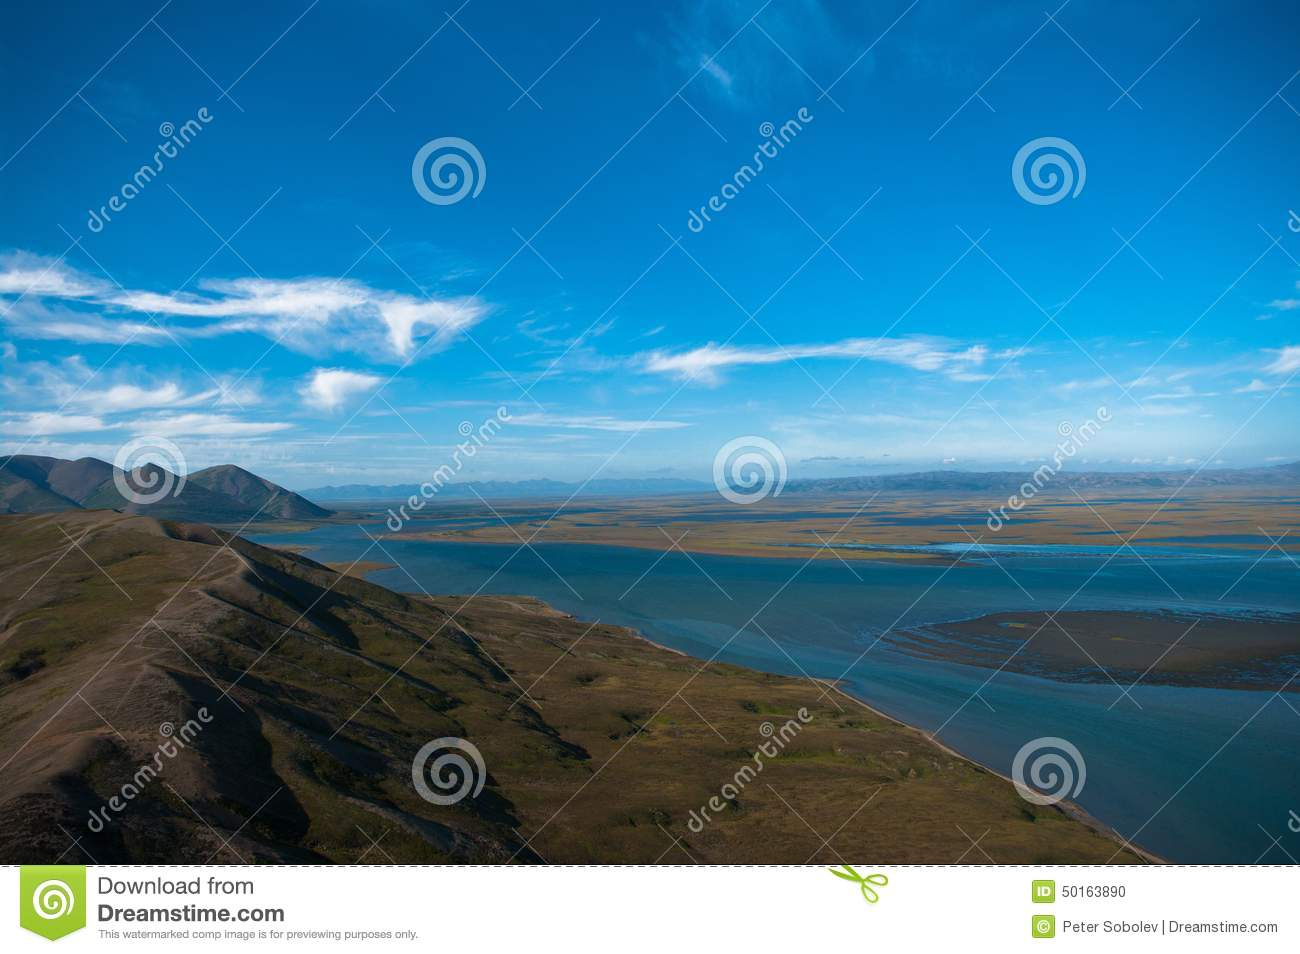 Russia. Chukotka. The coast of the Bering sea. Aerial view.